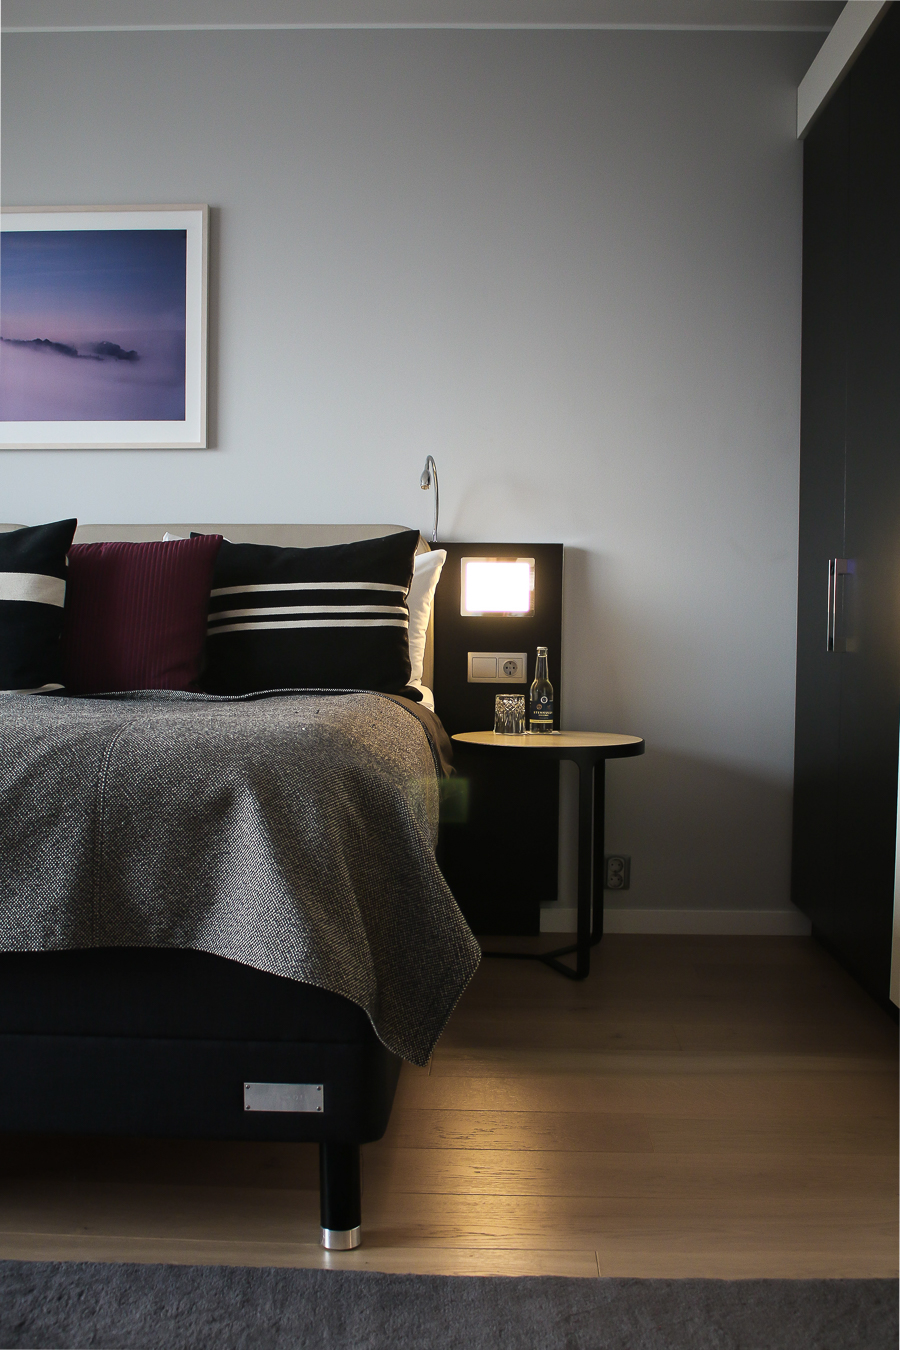 How to Create That Hotel Chic Experience in Your Own Bedroom - keep the clutter down